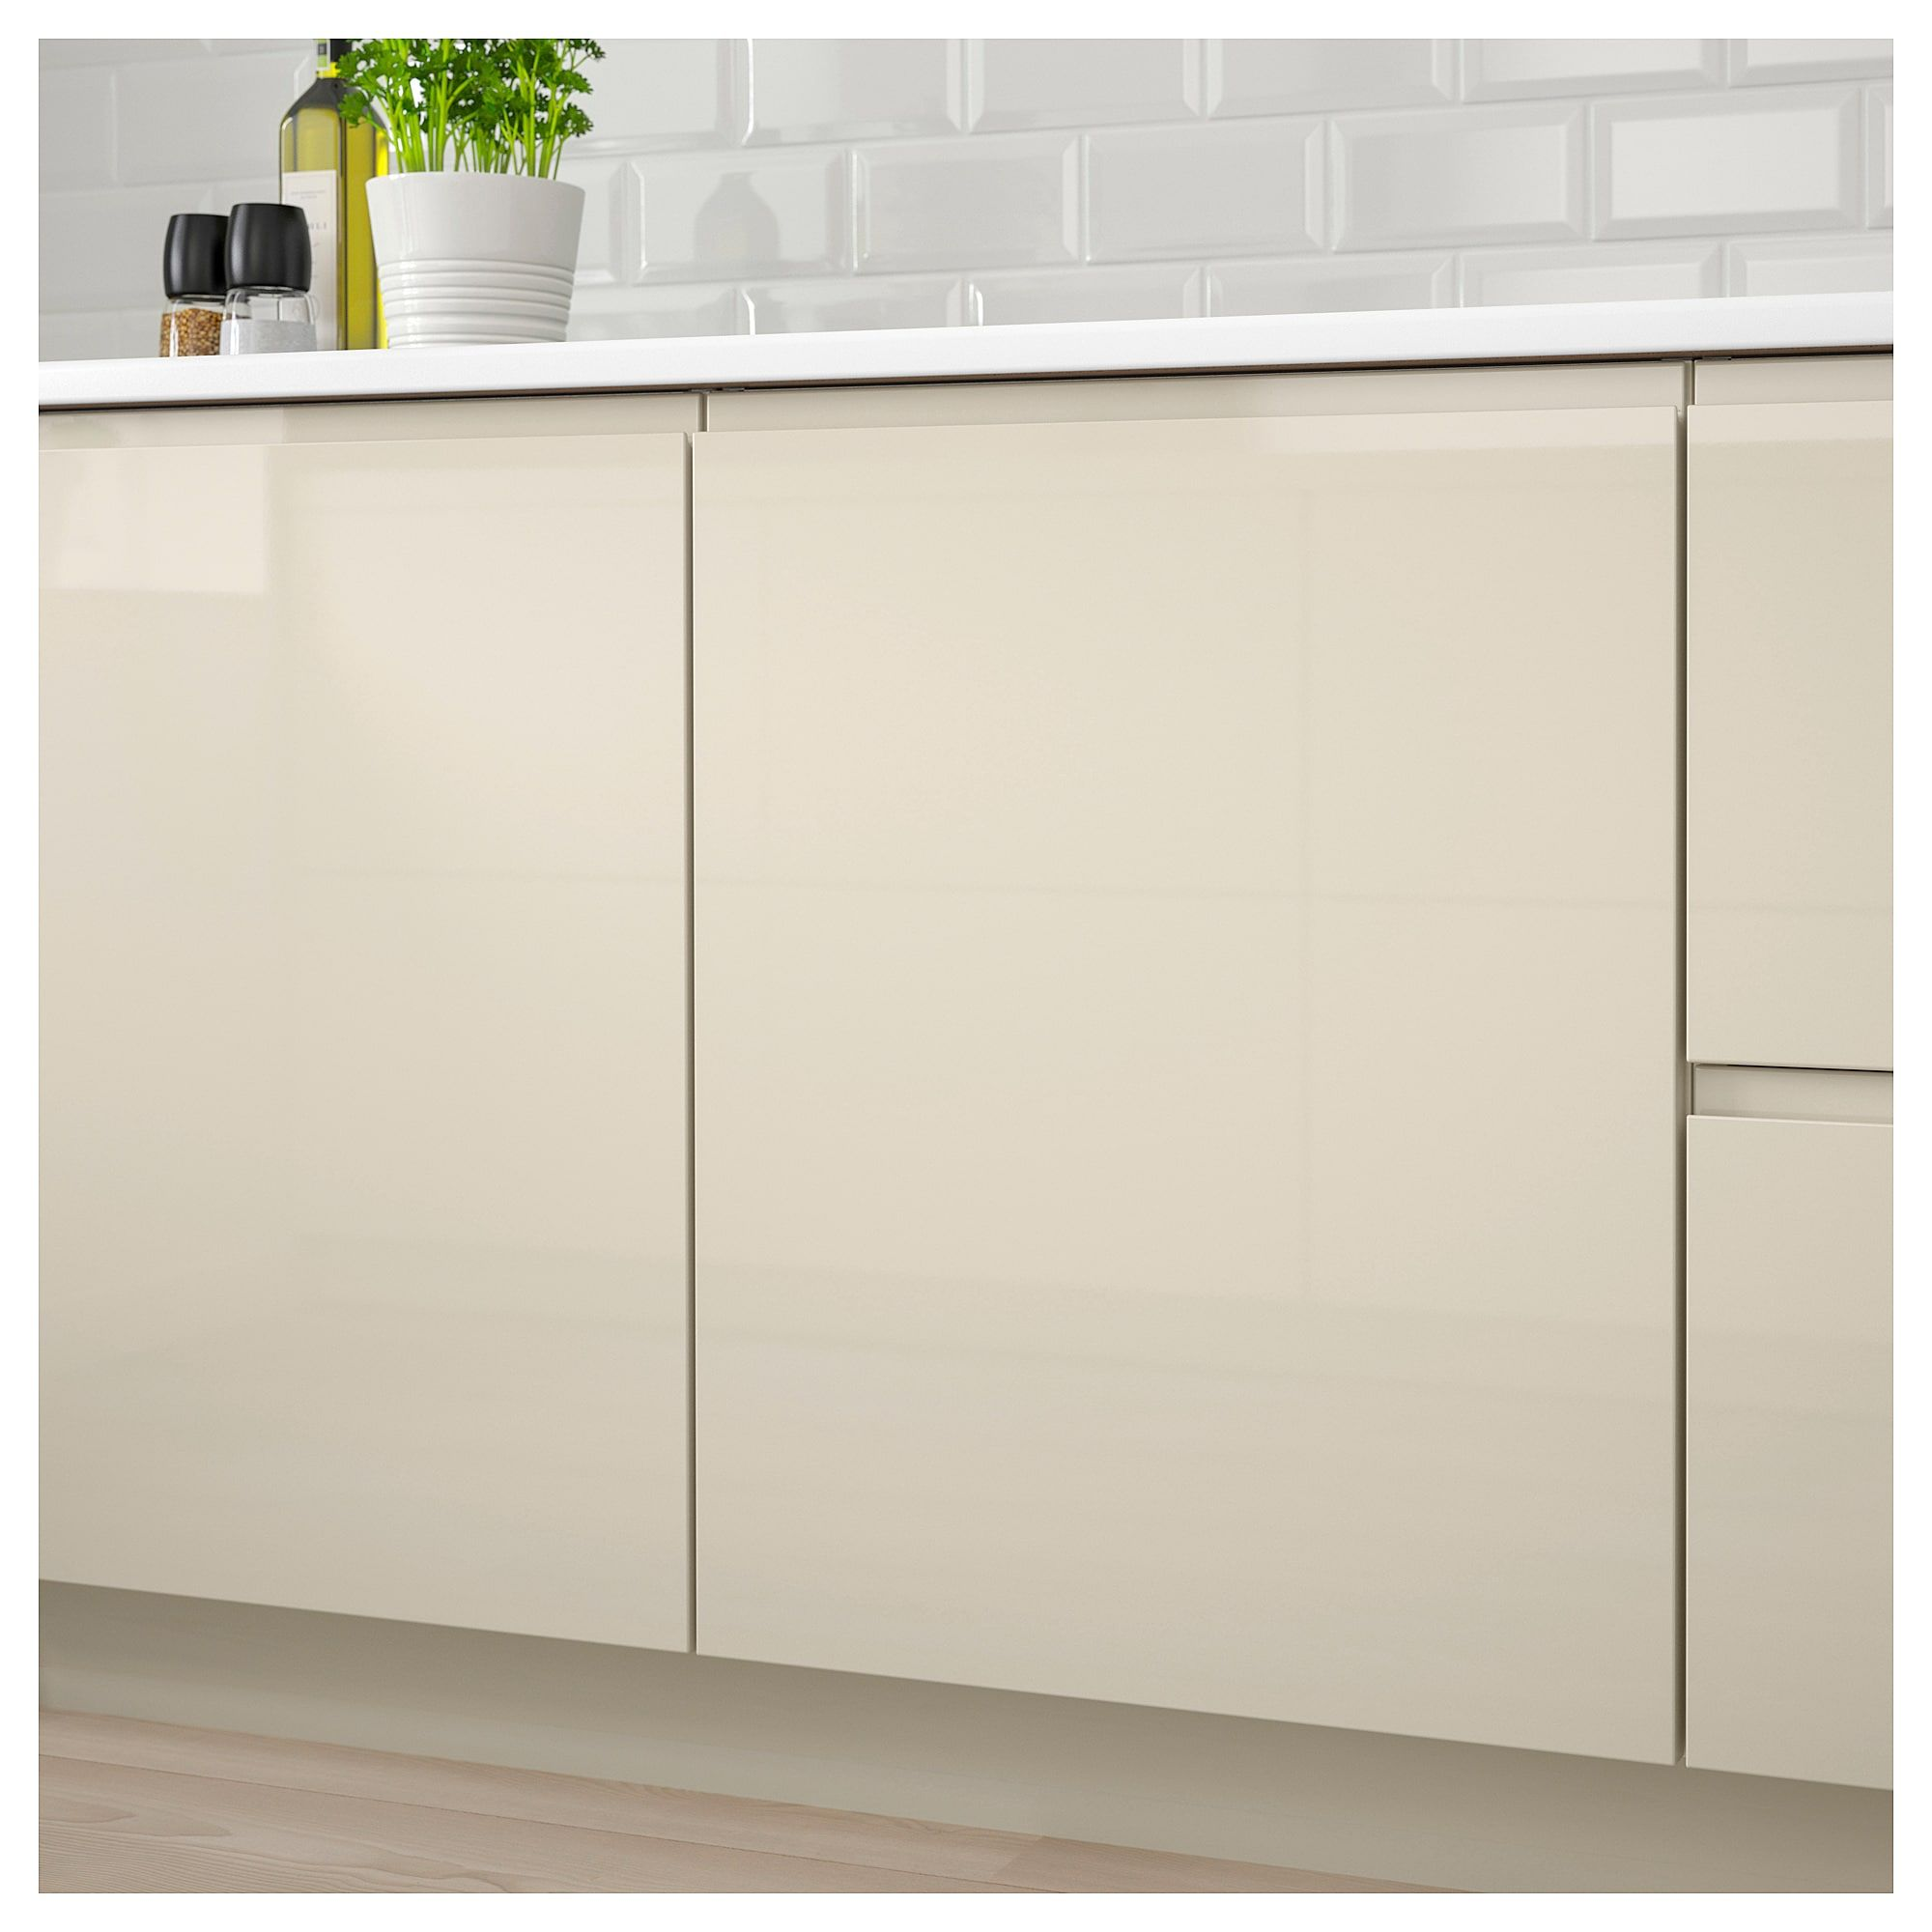 99 Shallow Kitchen Wall Cabinets Kitchen Counter Top Ideas Check More At Http Www Planetgreenspot Com 55 Sha Ikea Wall Cabinets Appliance Garage Ikea Wall